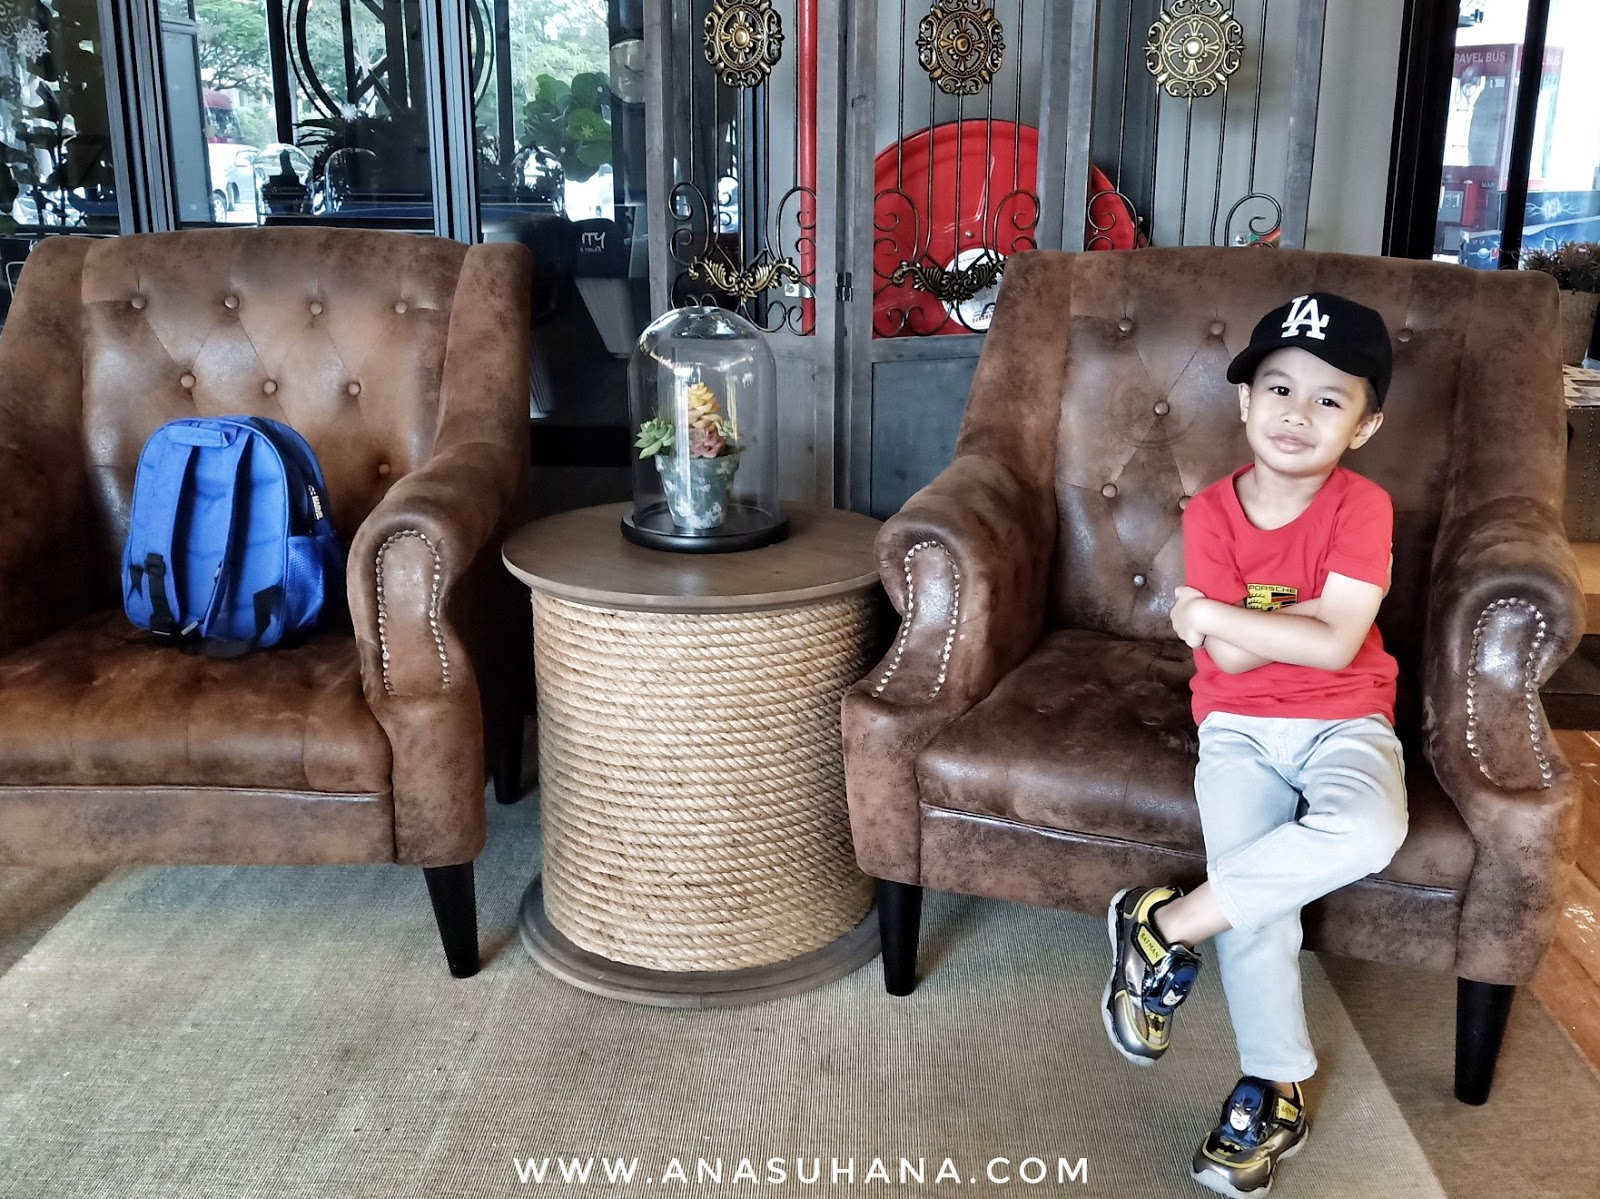 The Kampar Boutique Hotel